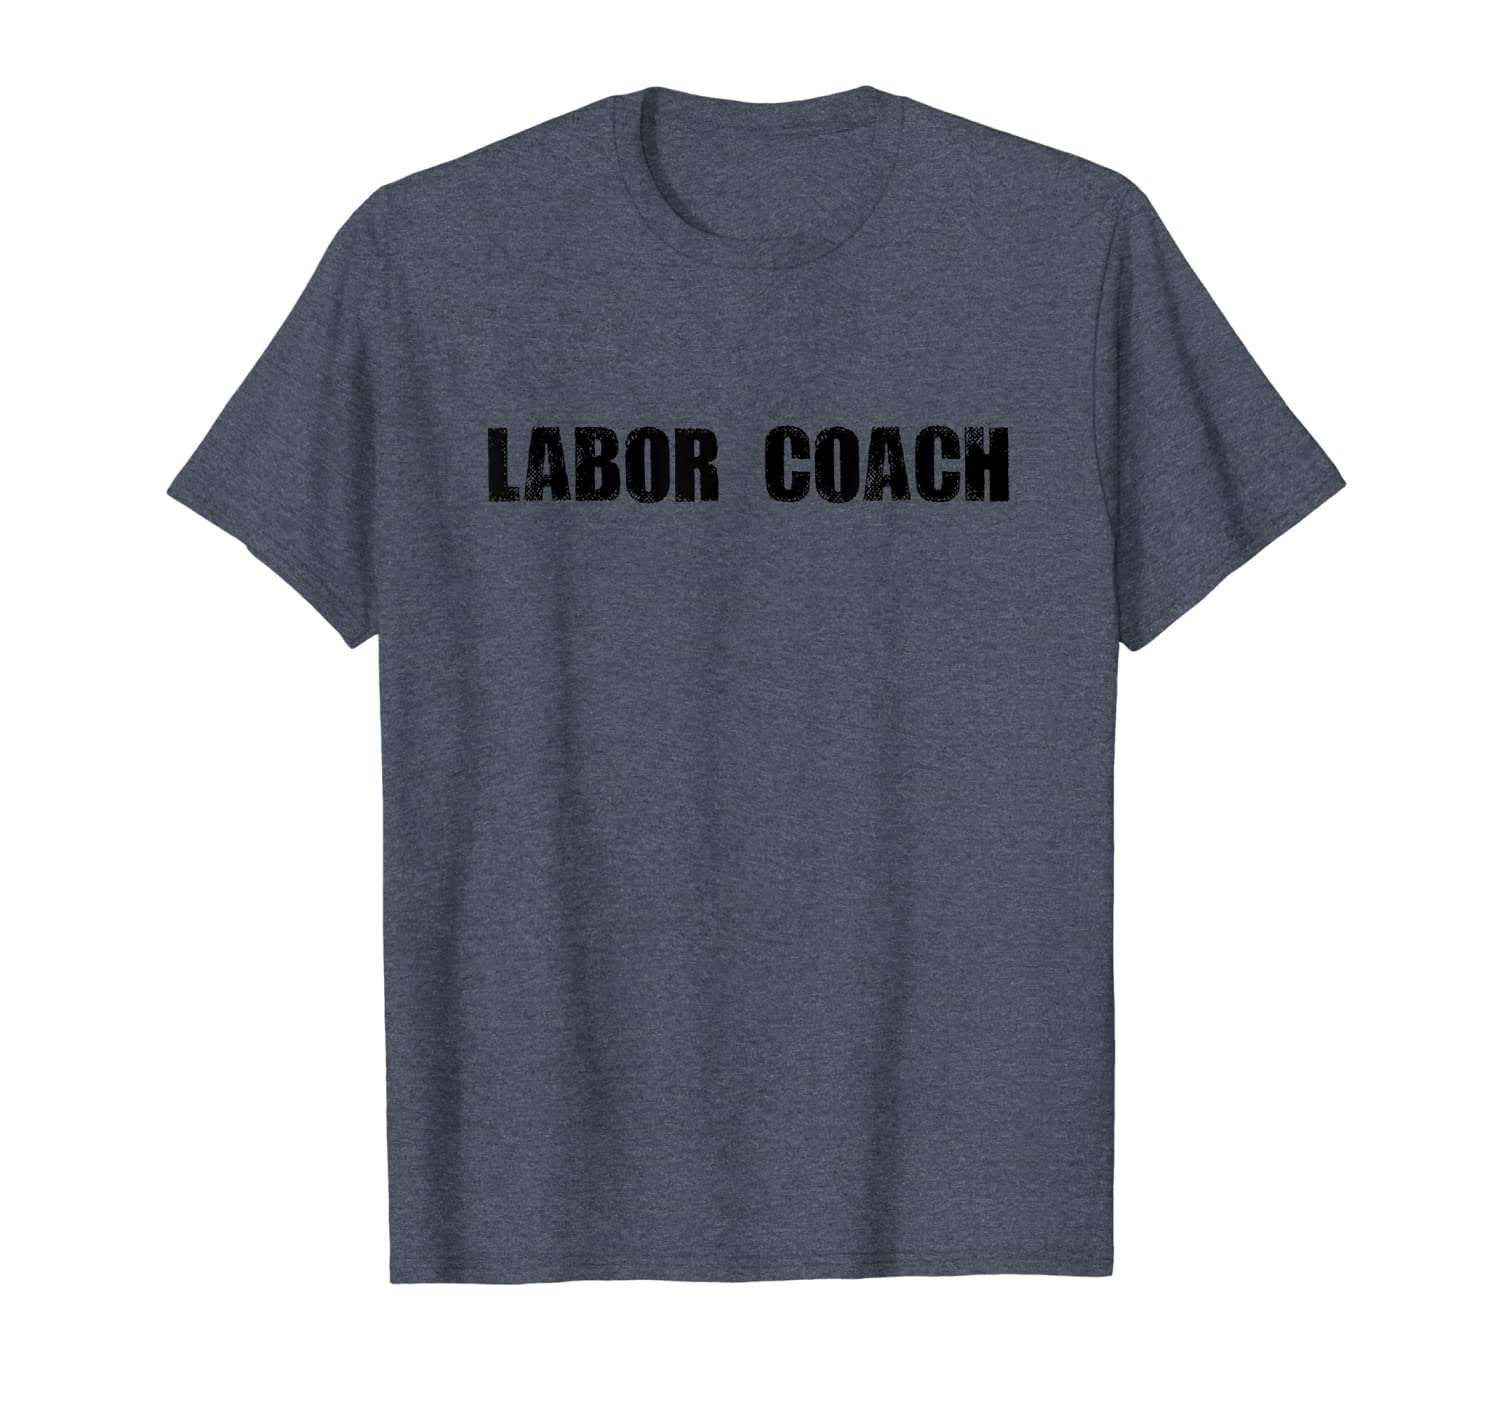 Amazon.com: Mano de obra Coach Camisa Funny regalo expectant ...